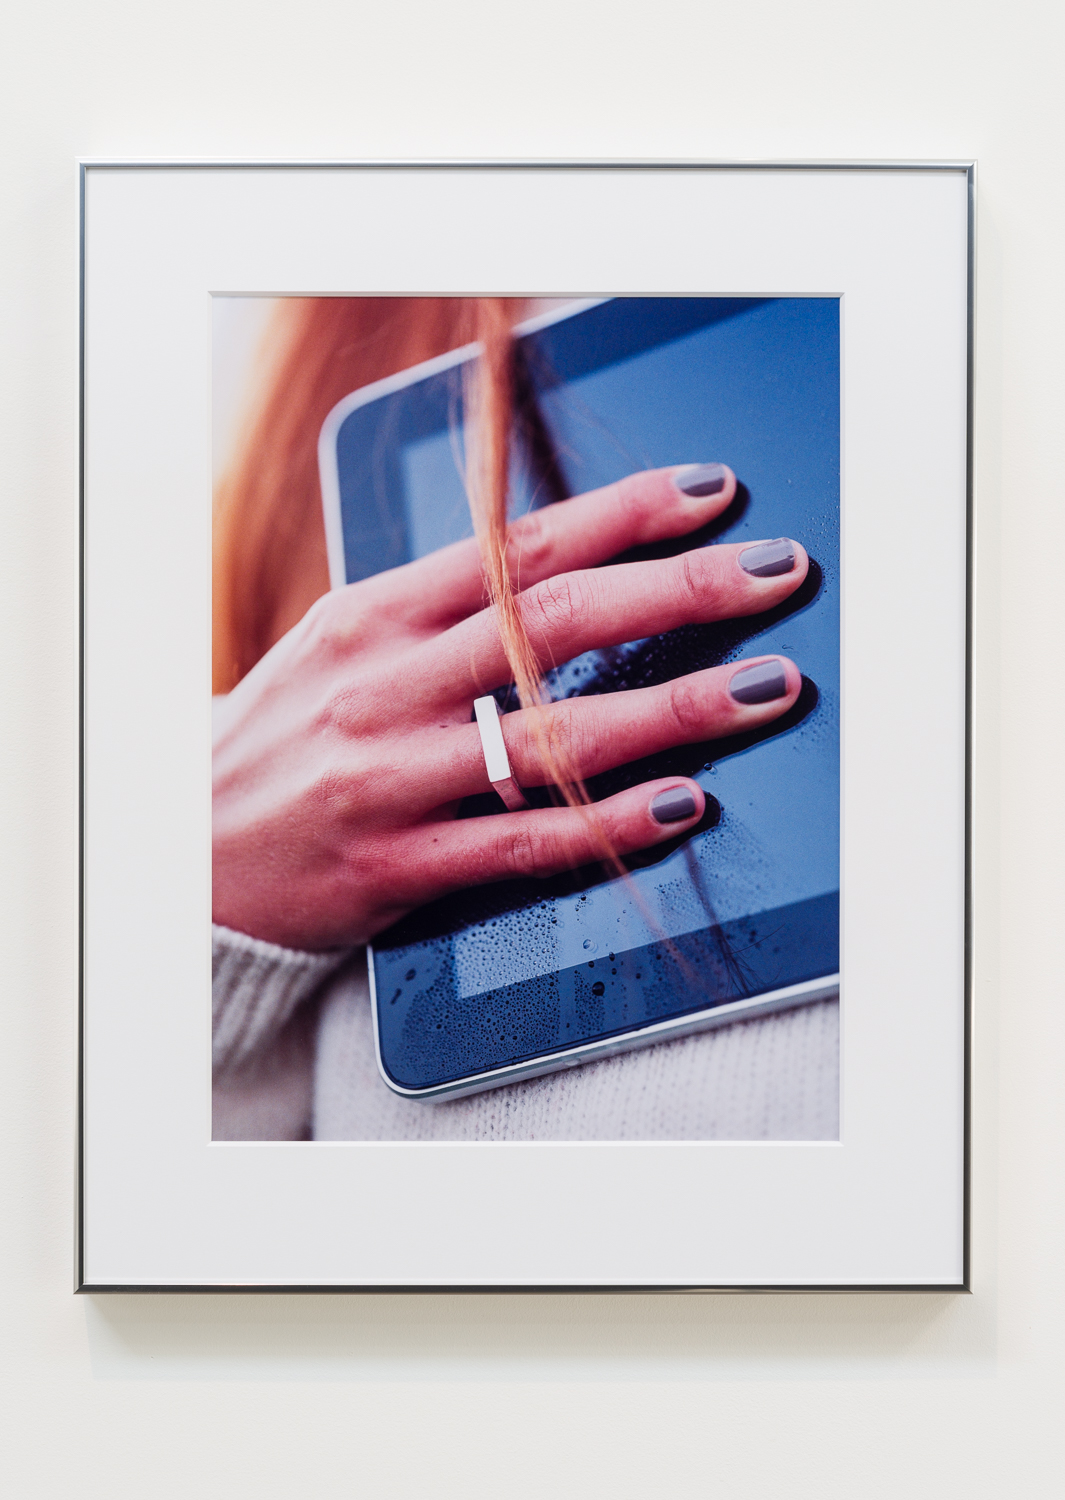 """Josephine Pryde, """"For Myself,"""" 2014. C-print. 23 ¼ x 17 ¼ inches. Edition 3/3"""